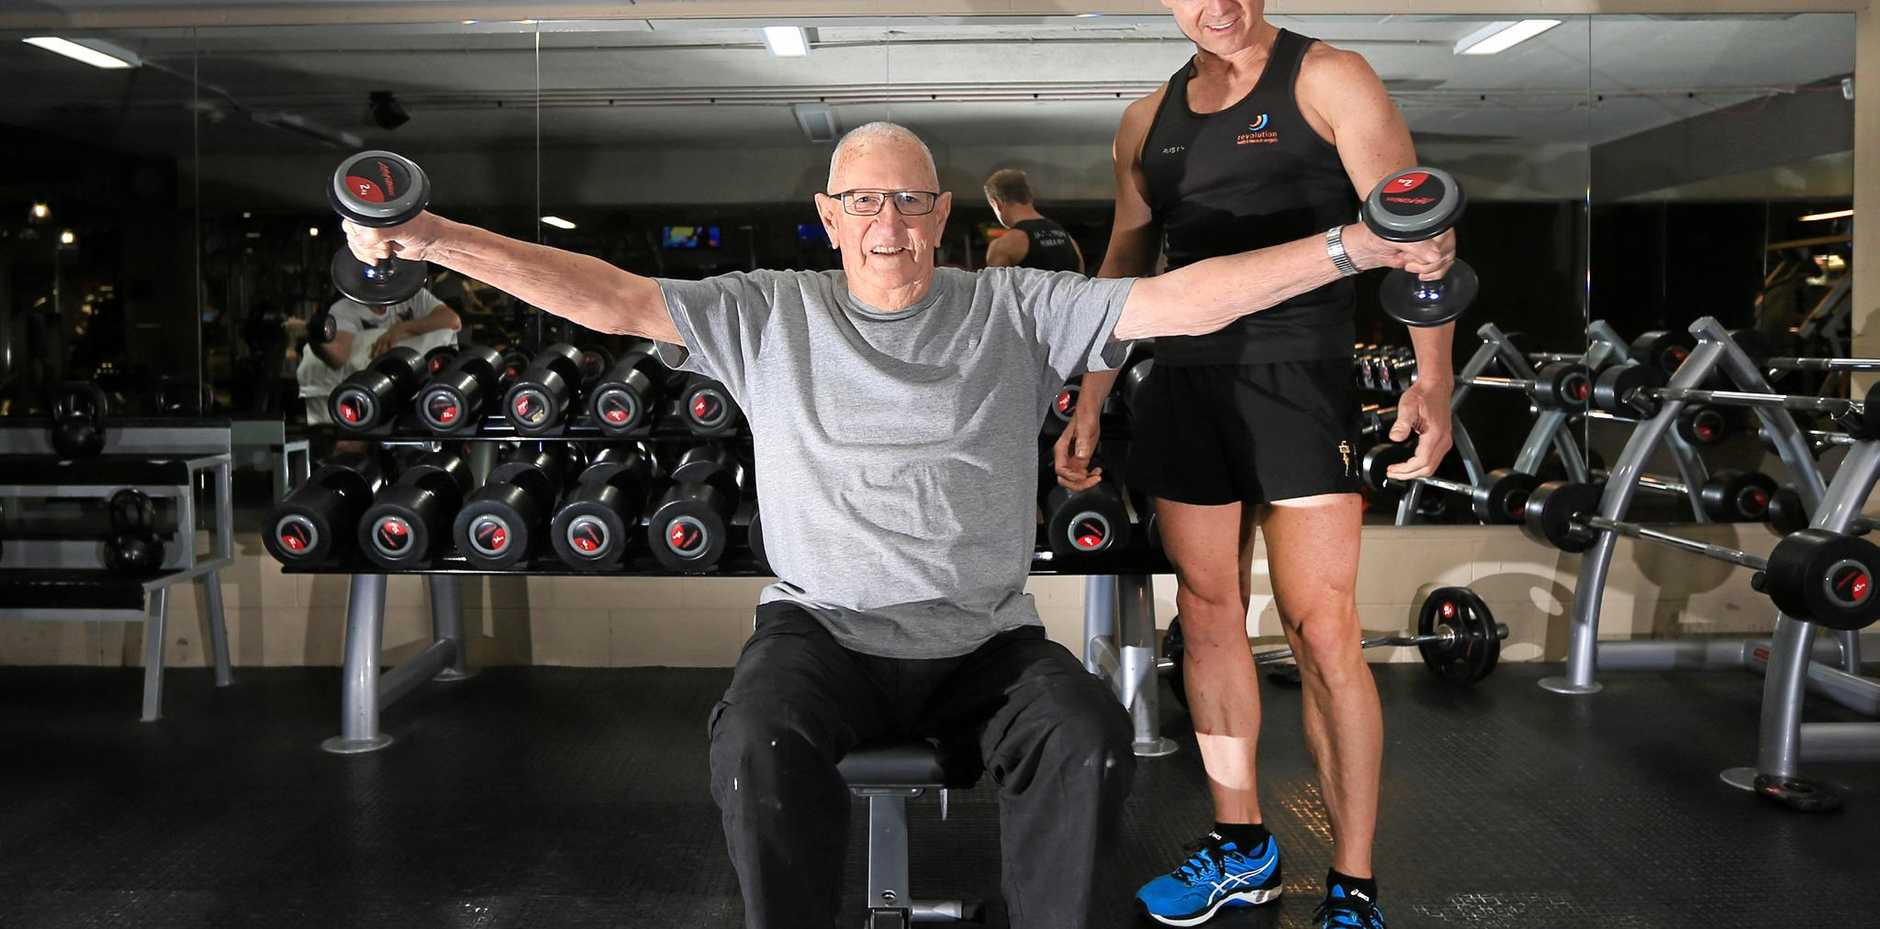 REACHING HIS GOALS: Personal trainer Rusty Roberts puts 90-year-old Rod Stebbins through a workout.